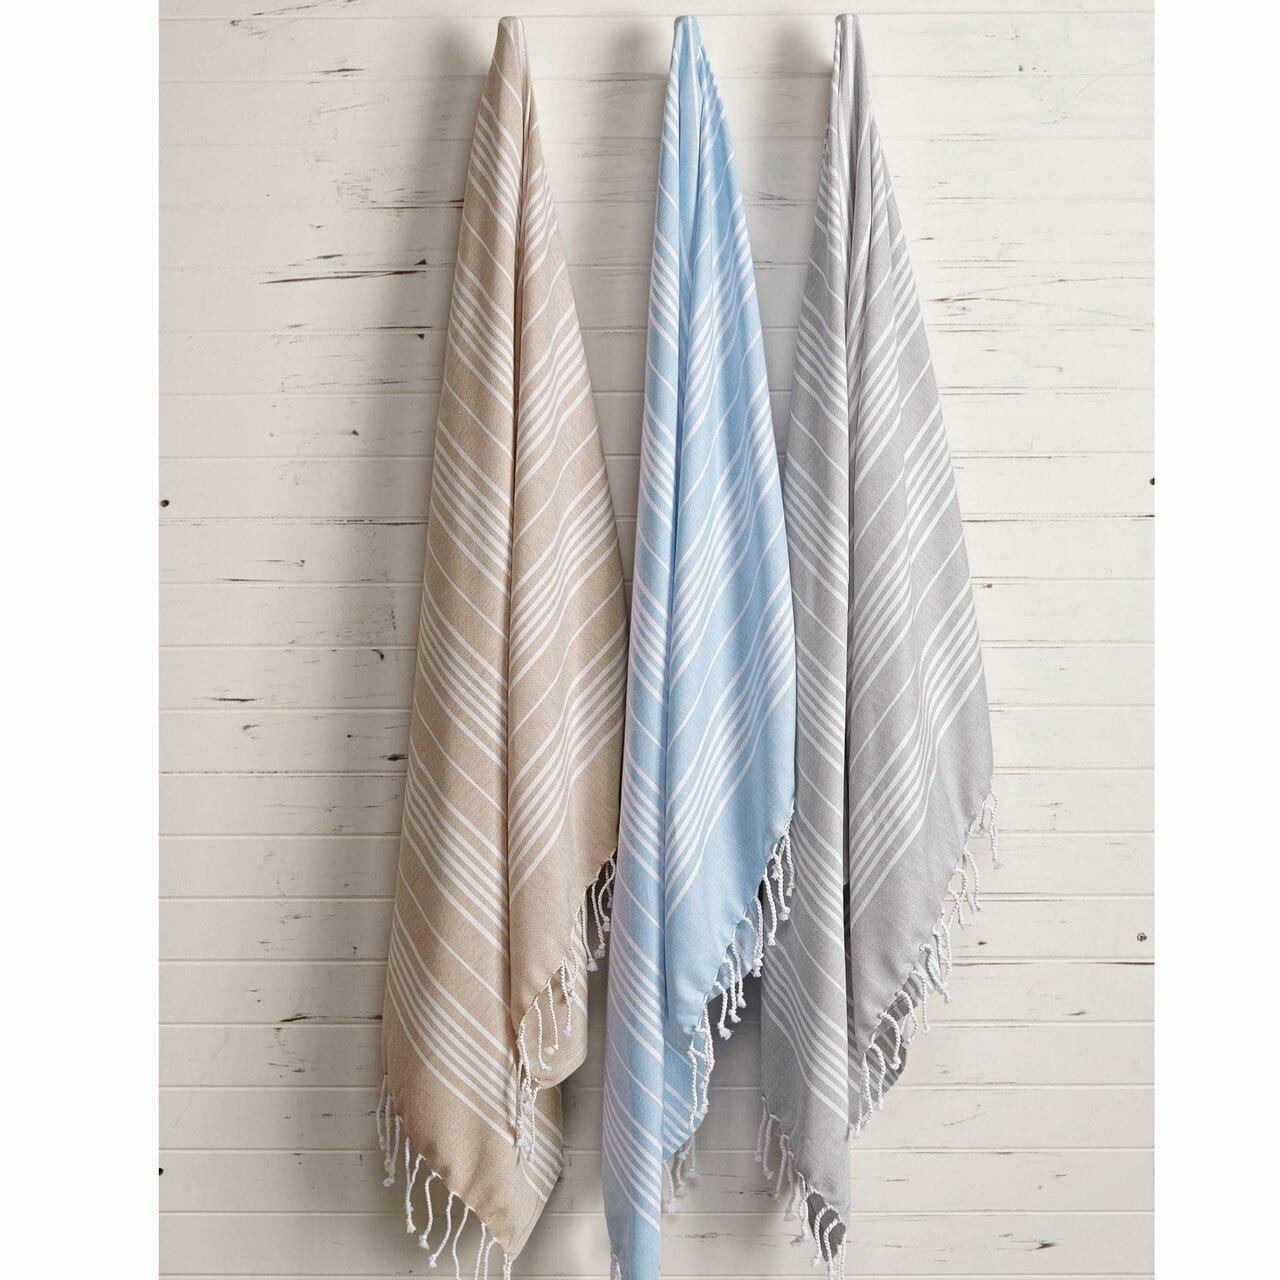 1888 Mills 1888 MILLS or WANDER BOHO BLANKETS or SAND or40X68 or 100percent RING SPUN COMBED COTTON or 1 DZ PER CASE